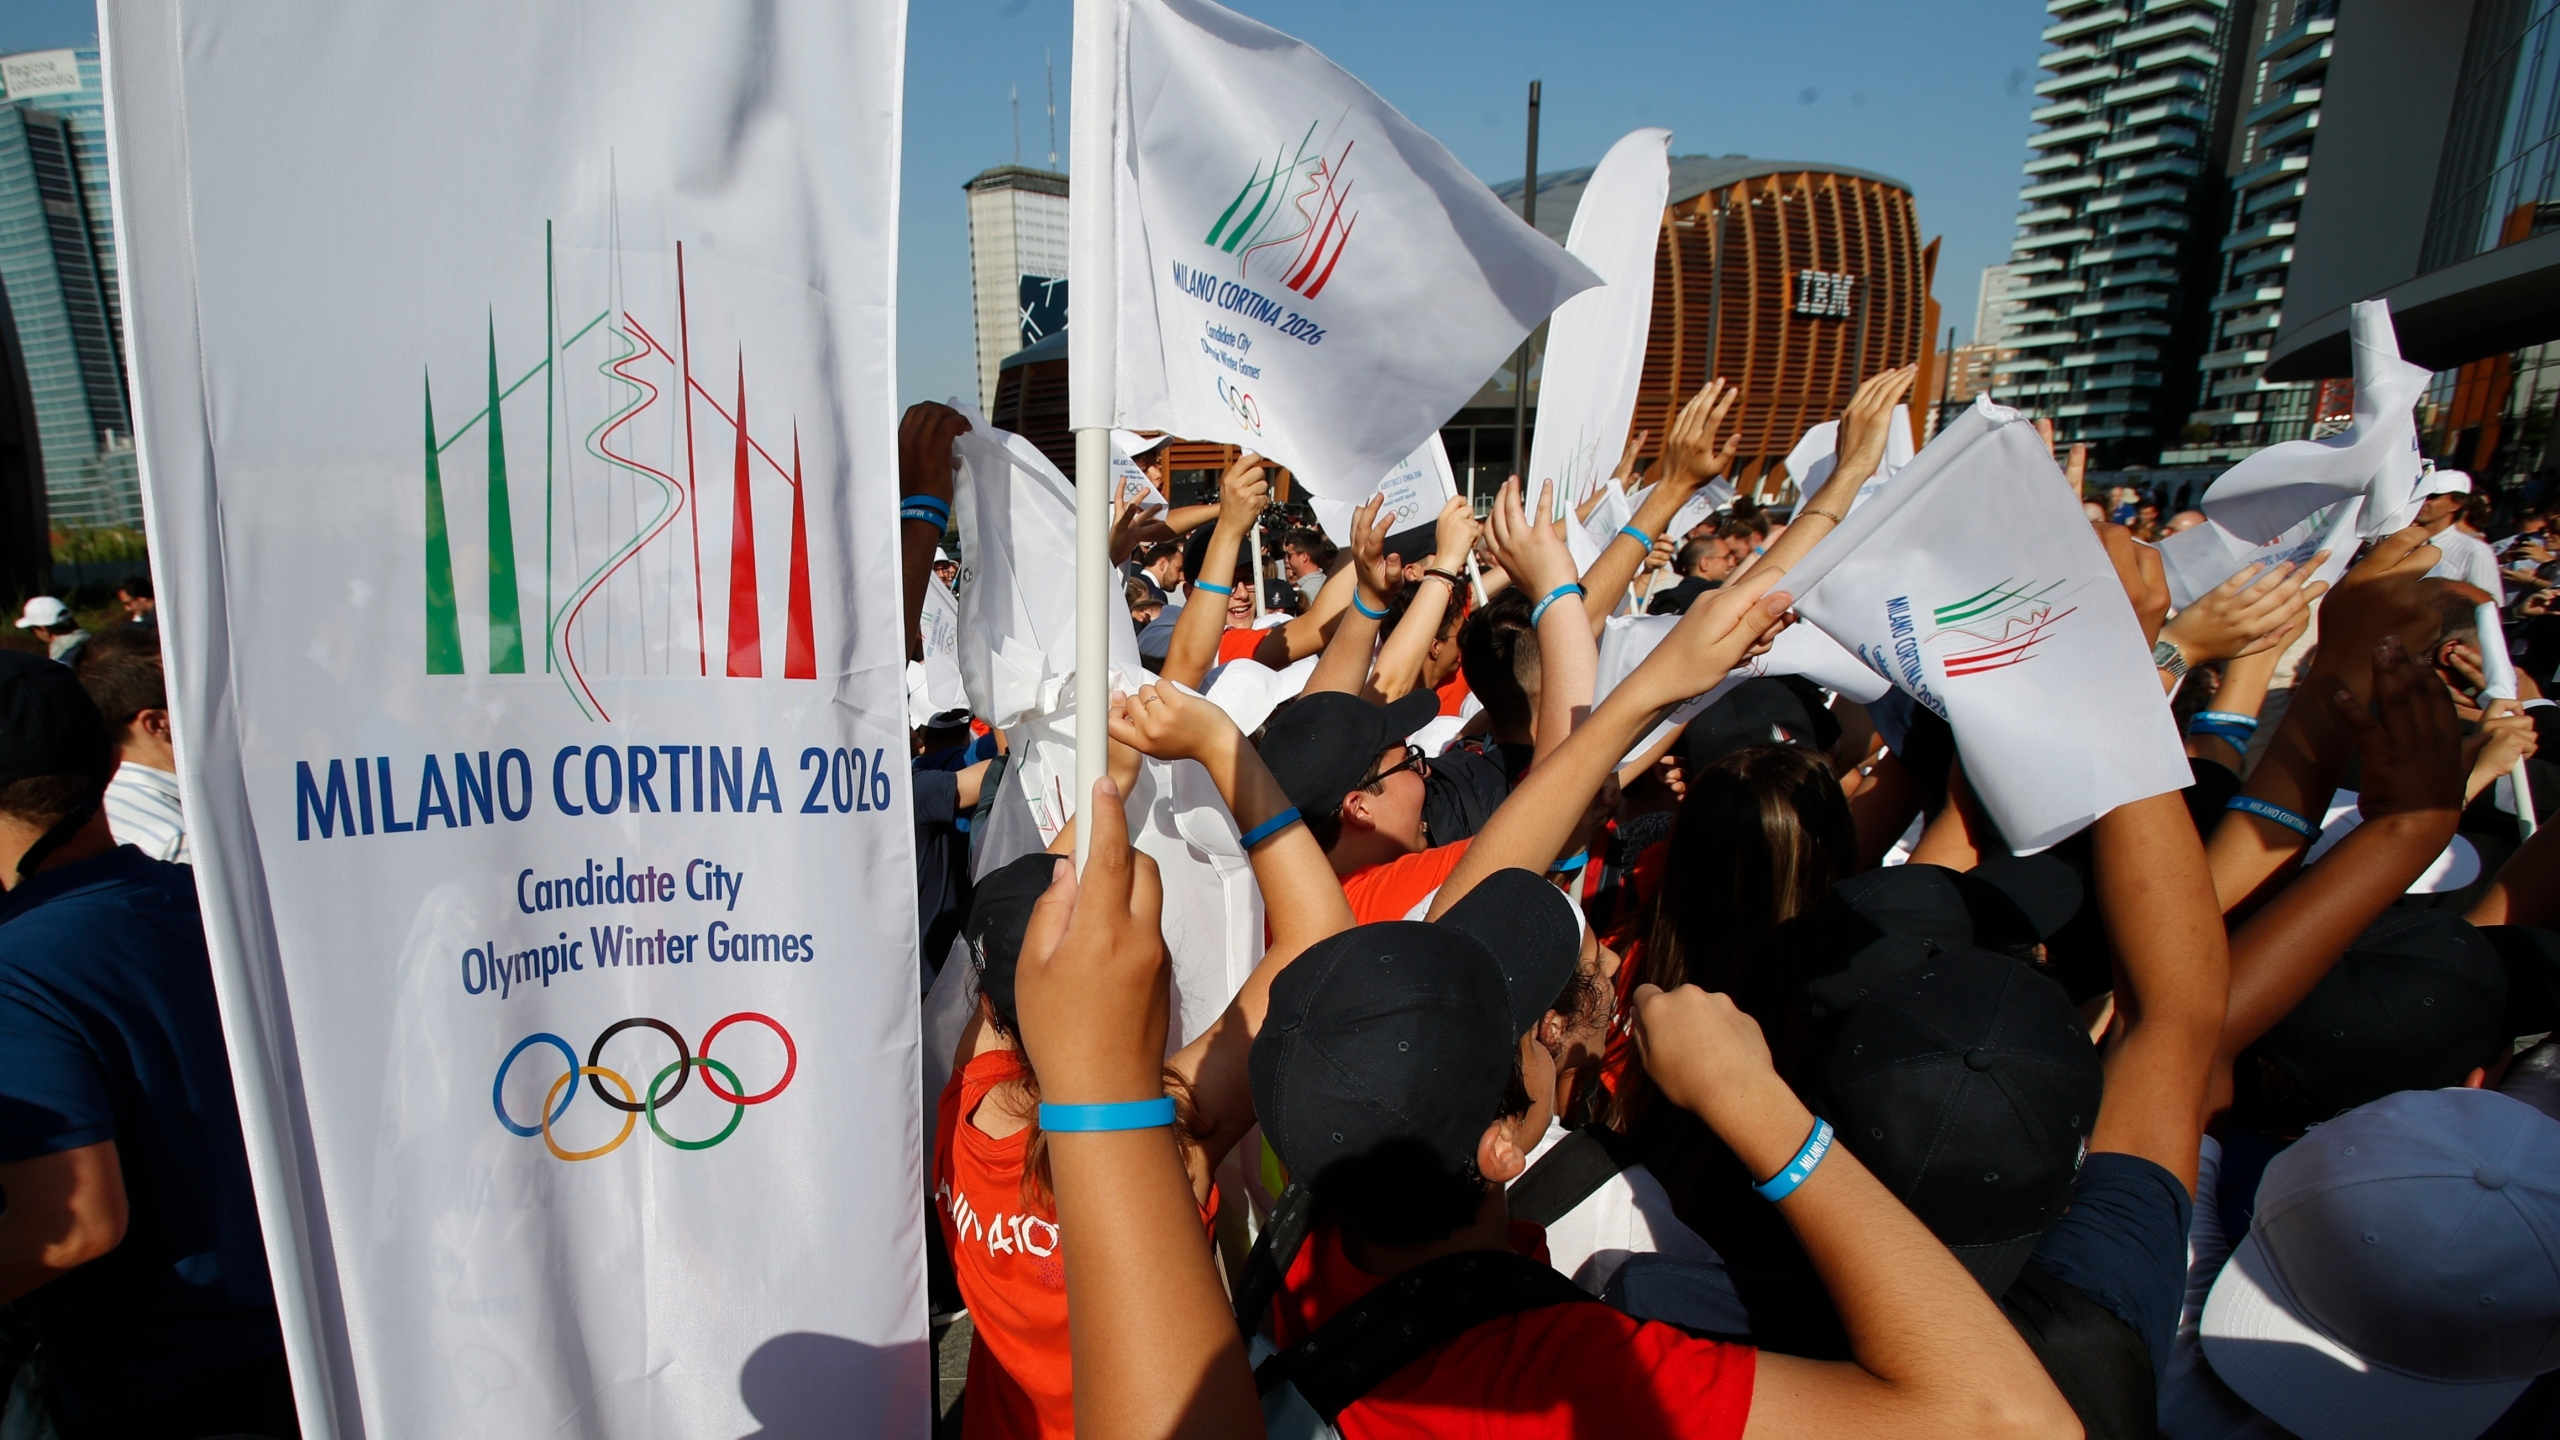 People celebrate after the announcement that the Italian bid of Milan-Cortina was voted by IOC members to host 2026 Winter Olympics, in Milan, Italy, Monday, June 24, 2019.